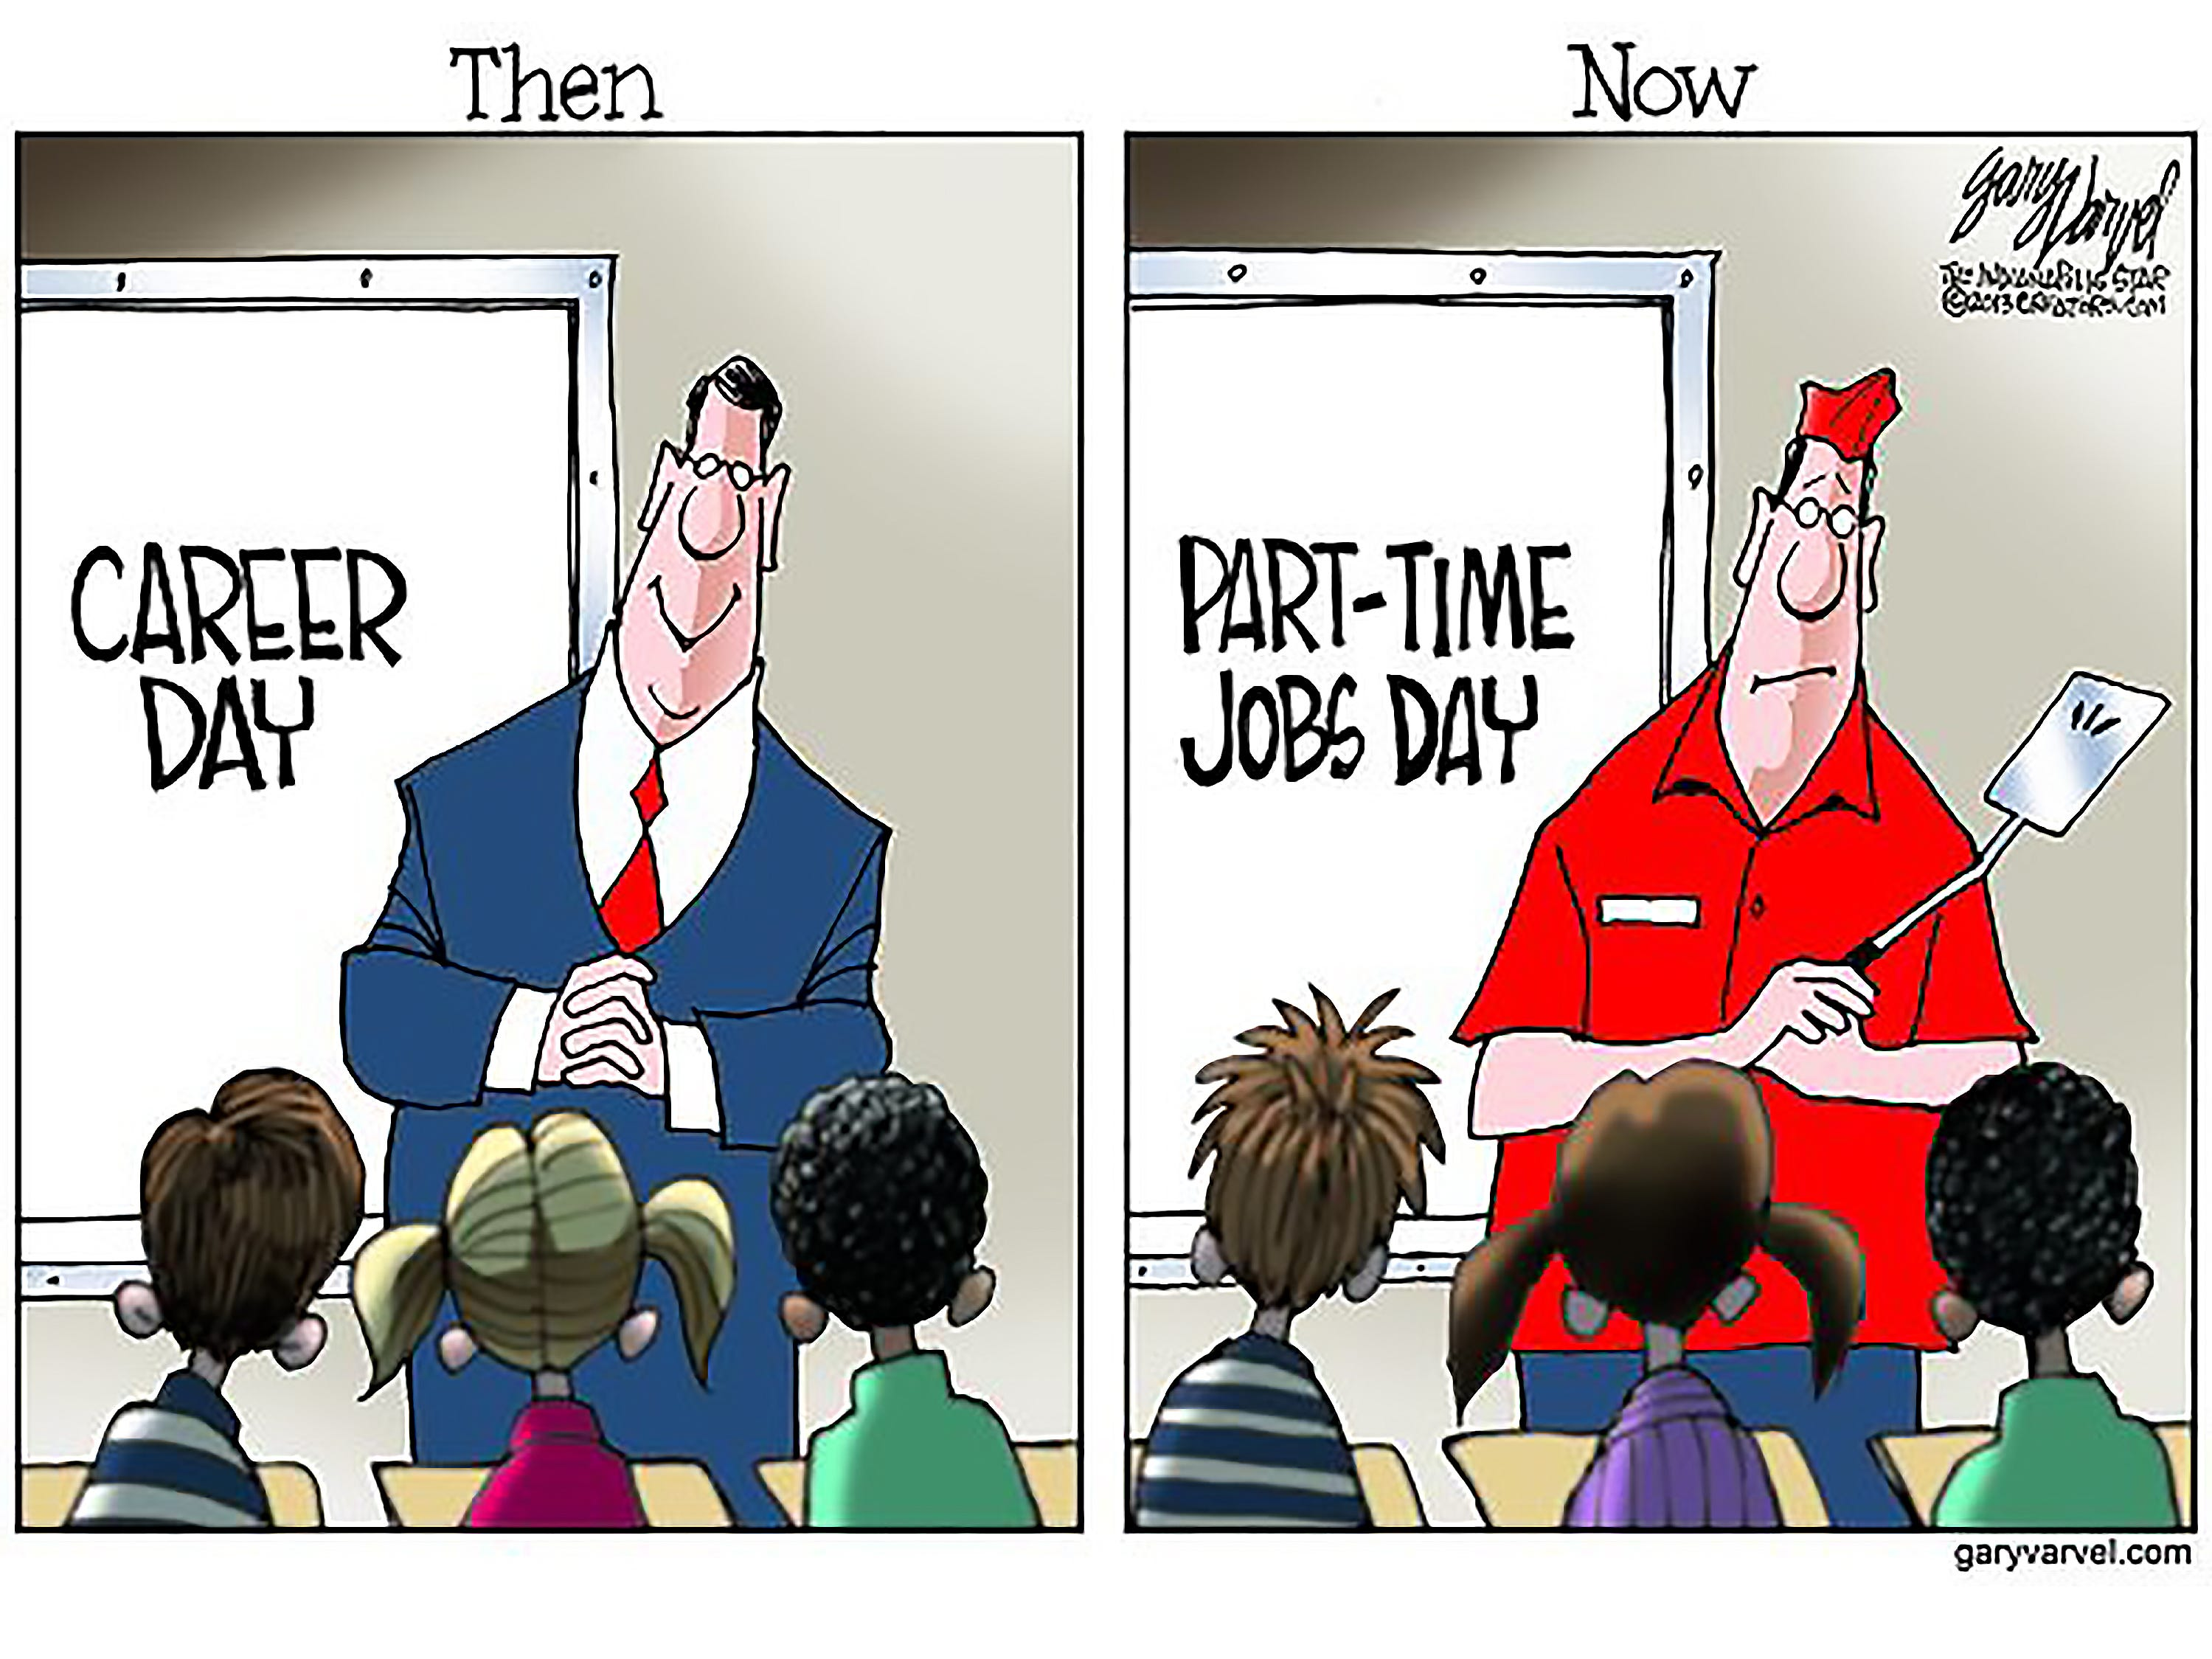 First published for Labor Day 2013. The cartoonist's homepage, indystar.com/opinion/varvel